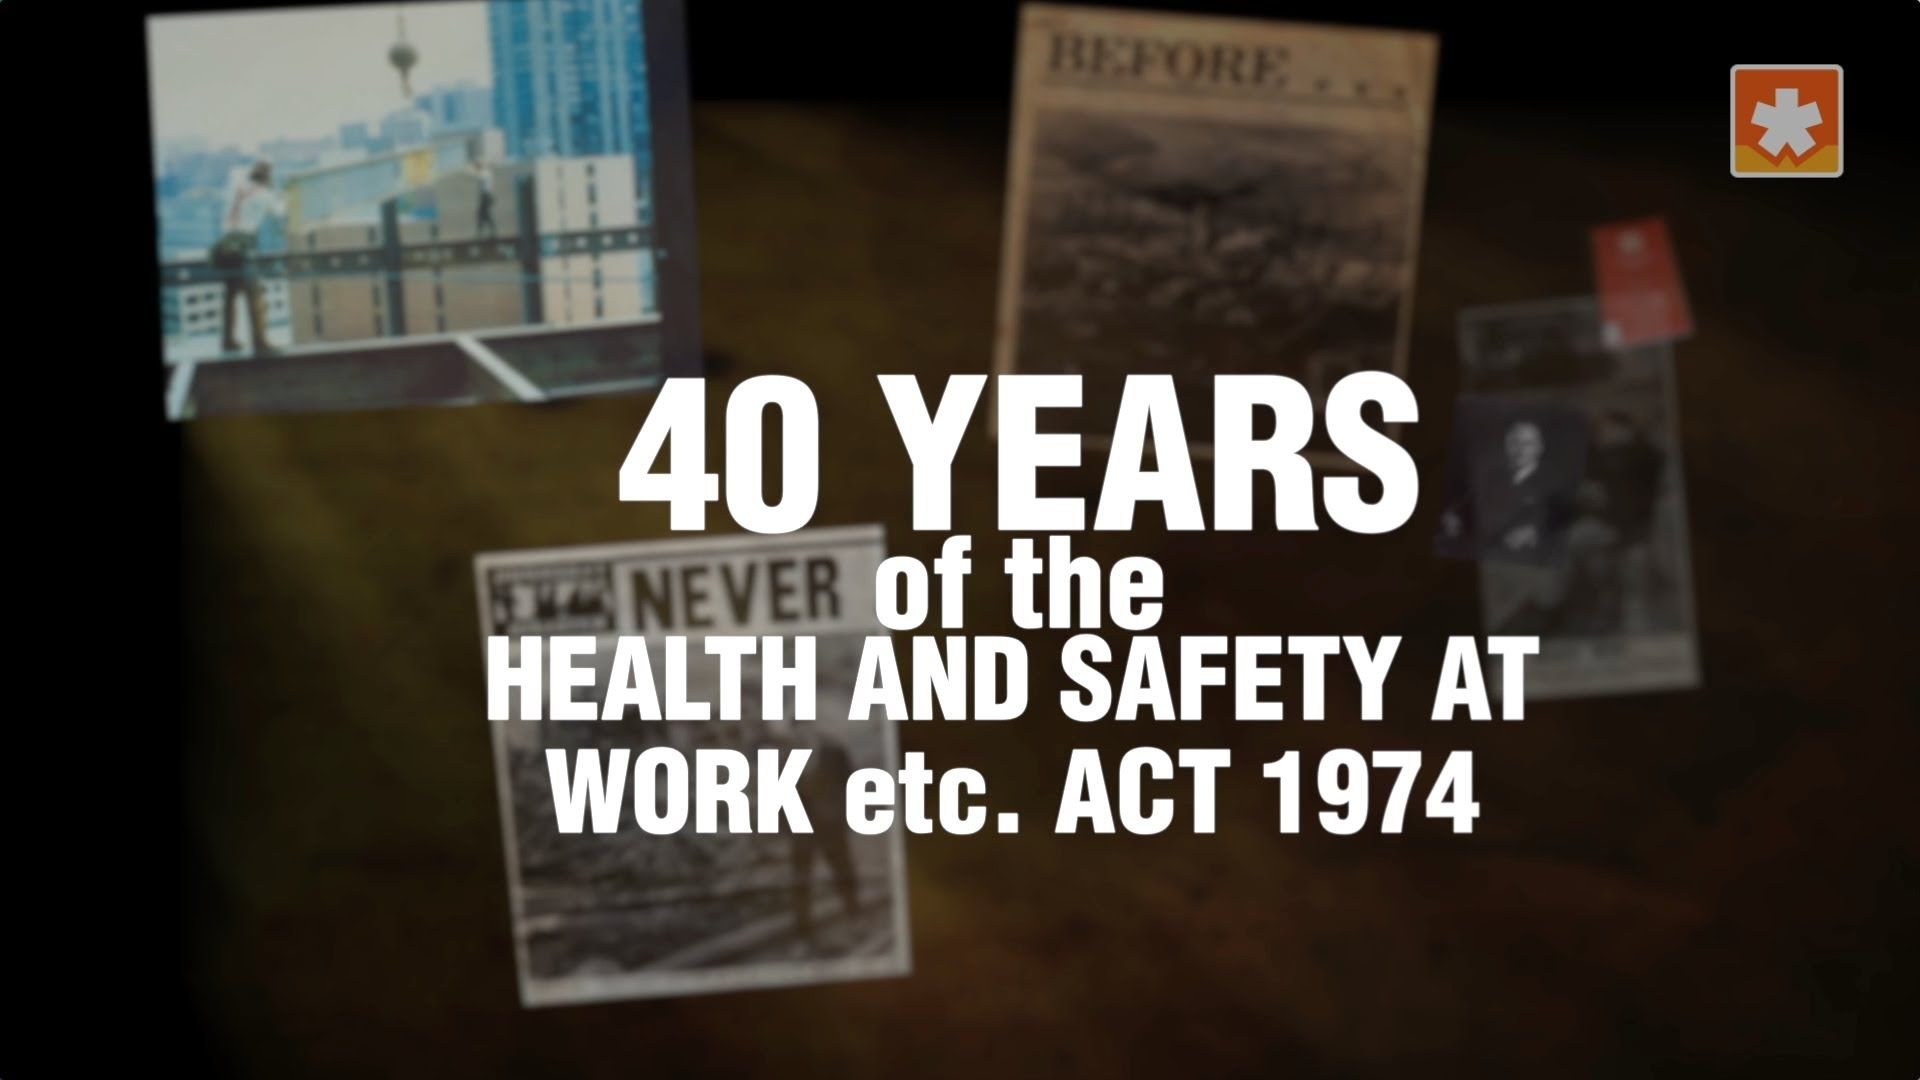 The Health and Safety at Work etc. Act 1974 may now be 40